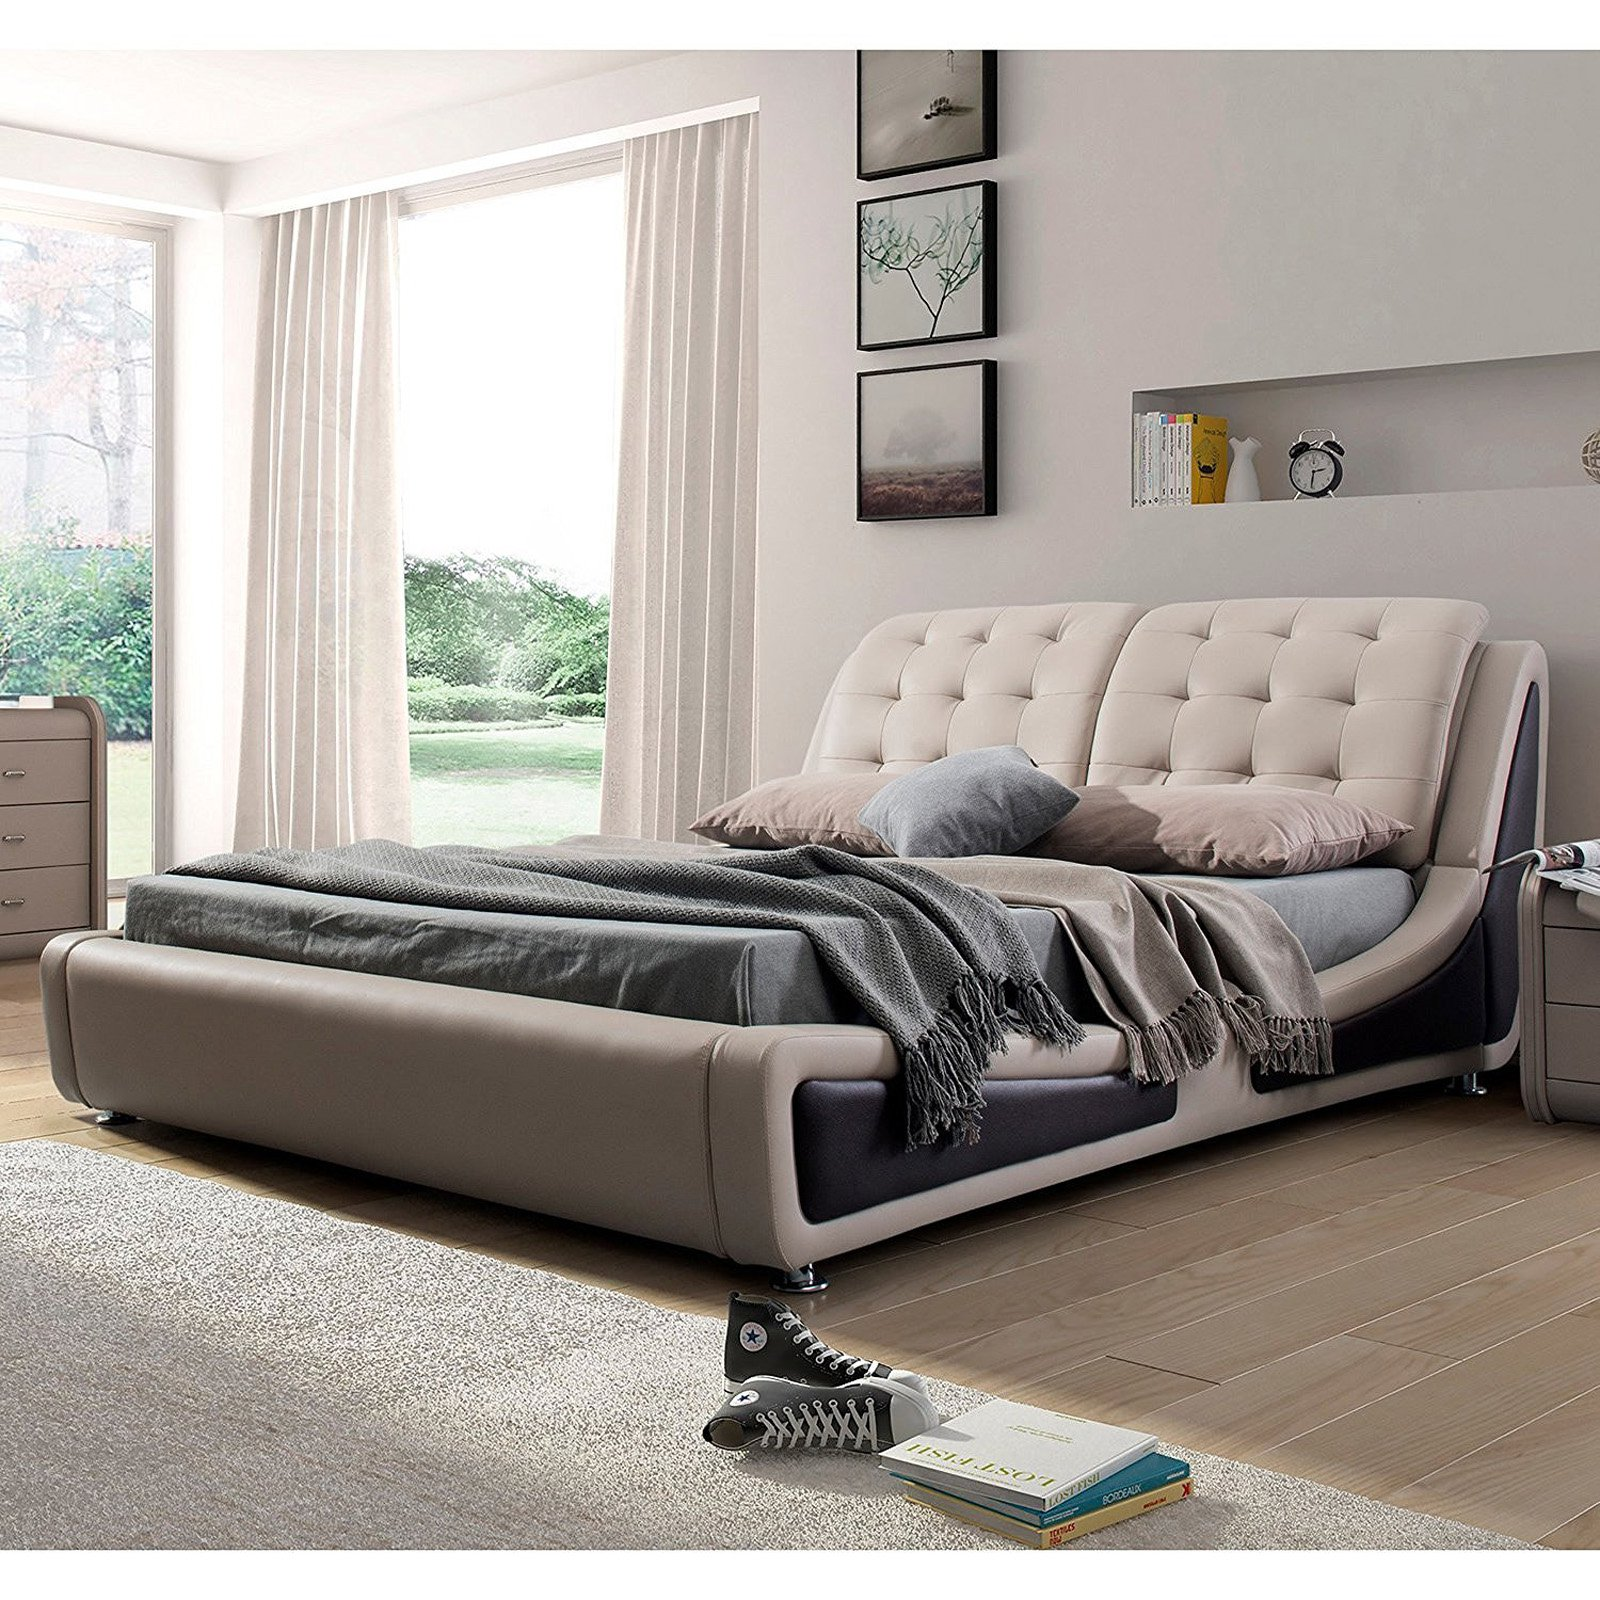 Olivia Contemporary Button Tufted Faux Leather Platform Bed, Beige Brown, Eastern King by U.S. Pride Furniture